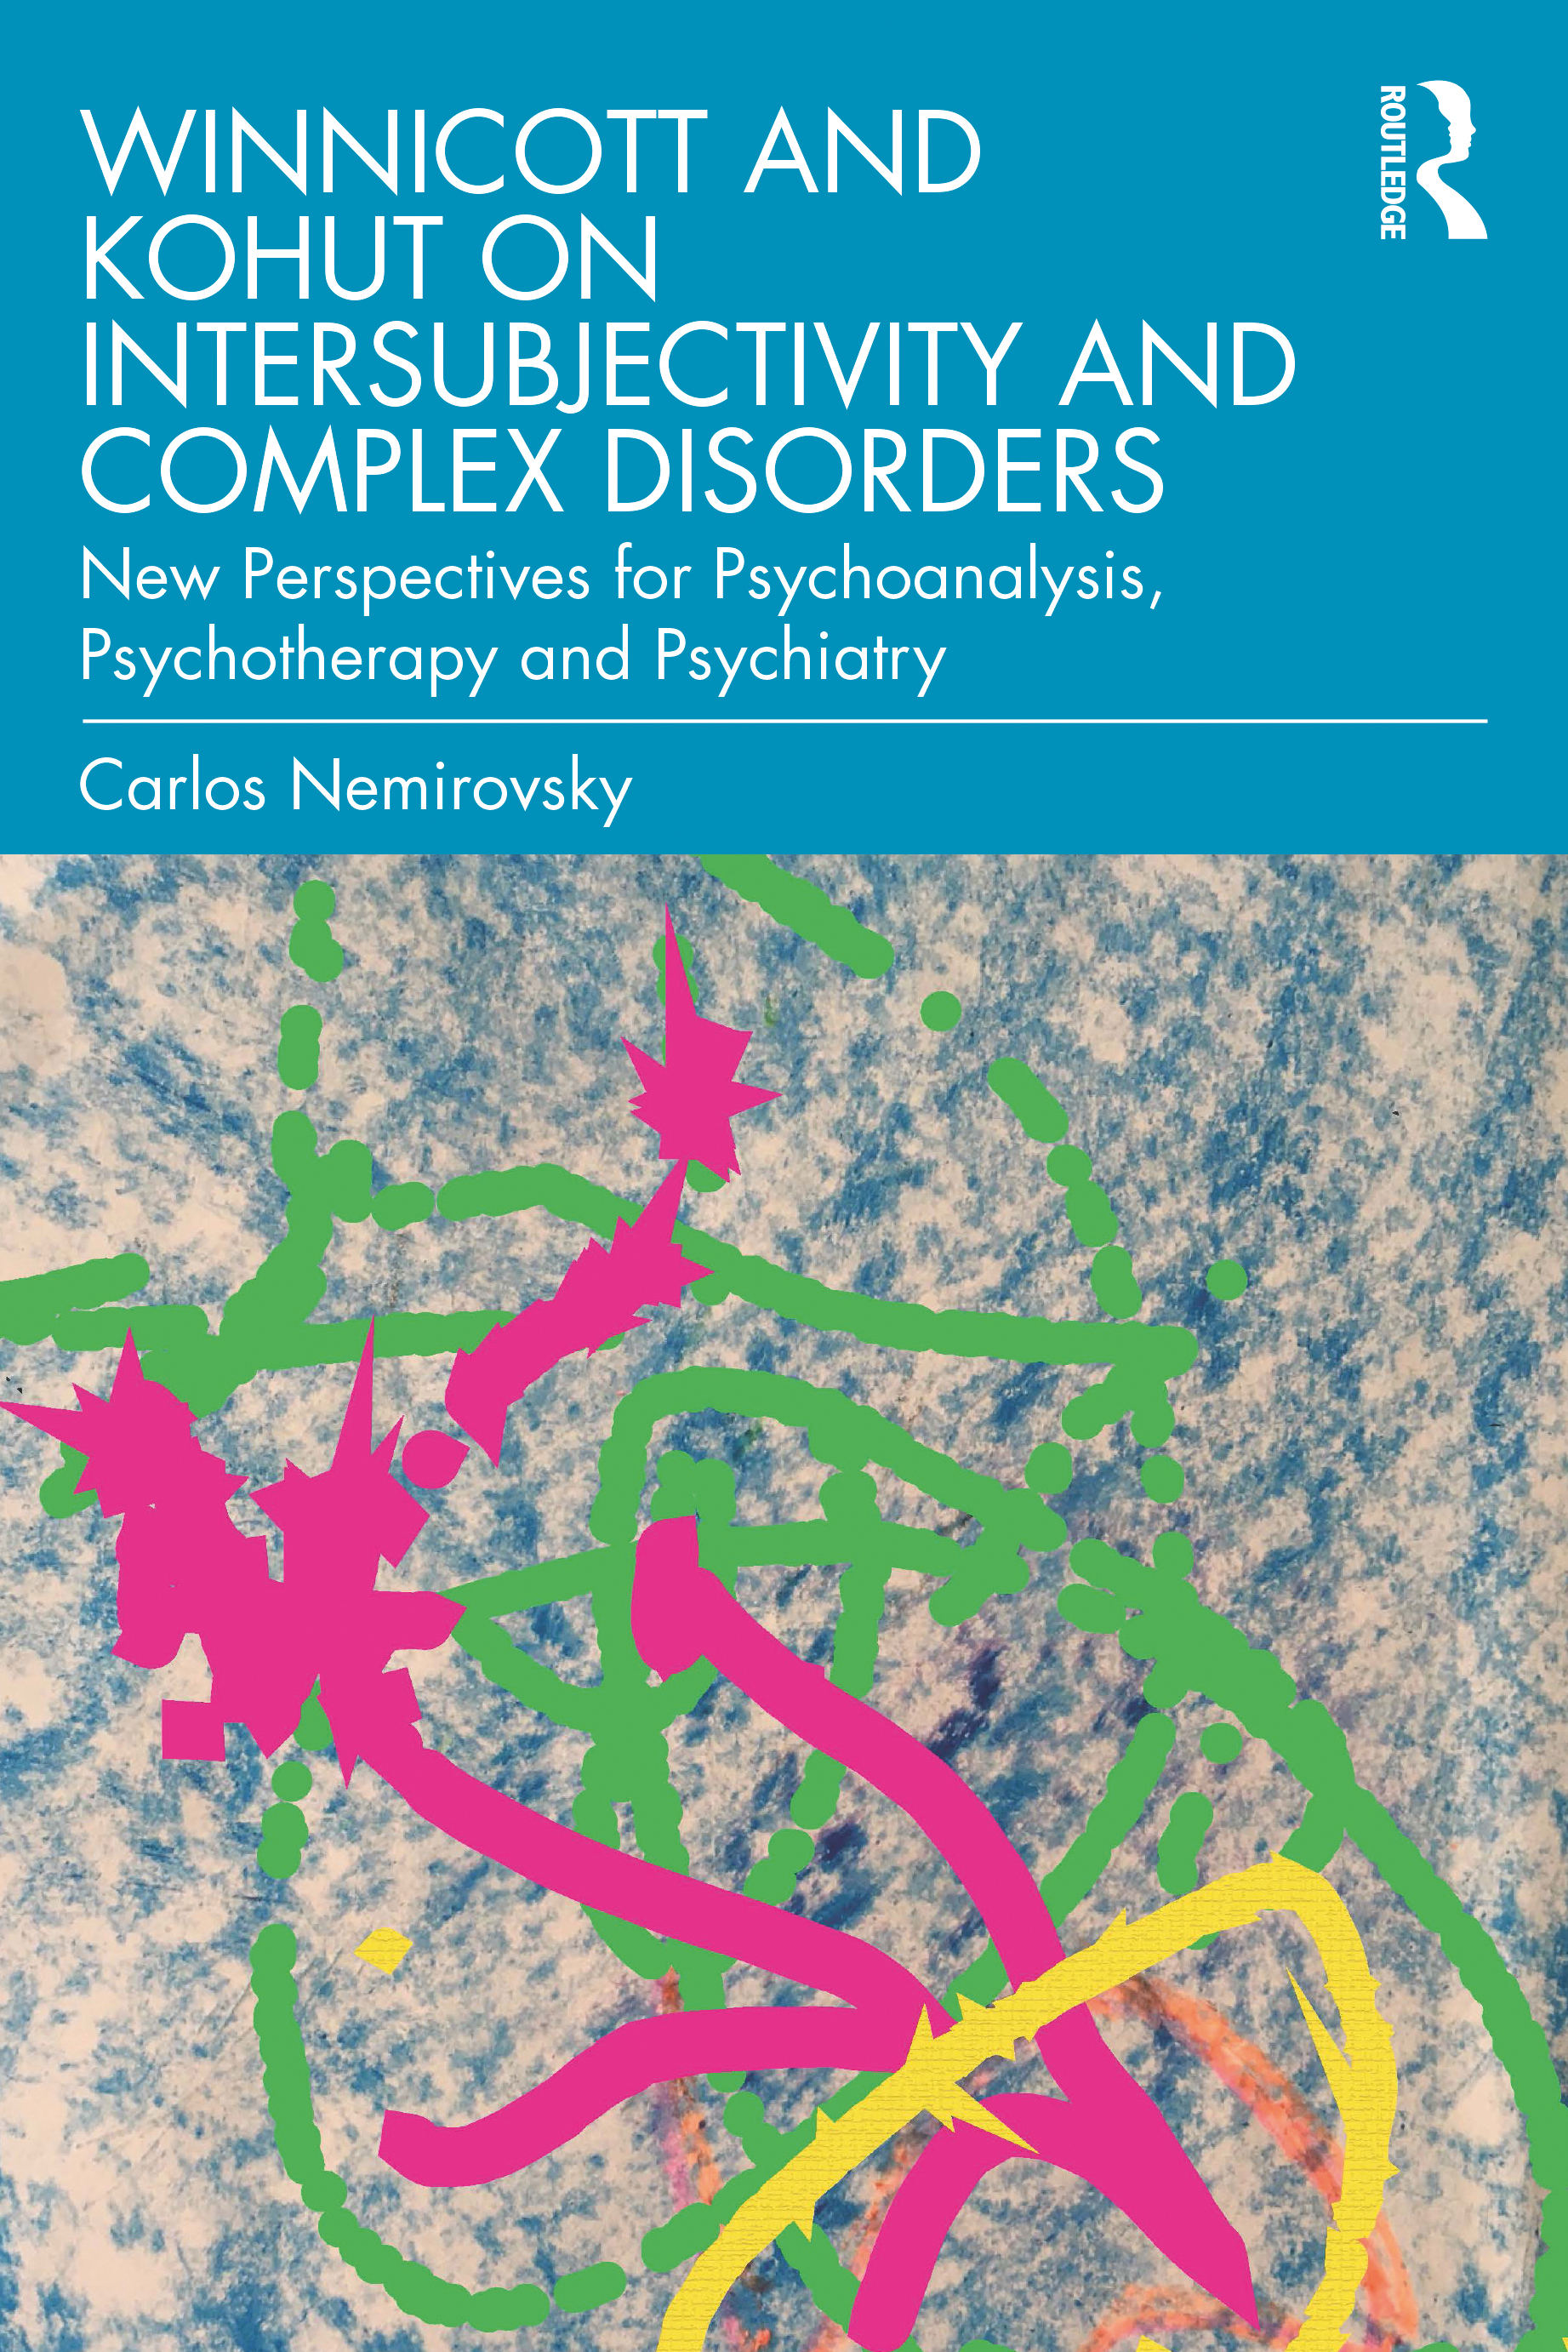 Winnicott and Kohut on Intersubjectivity and Complex Disorders: New Perspectives for Psychoanalysis, Psychotherapy and Psychiatry book cover